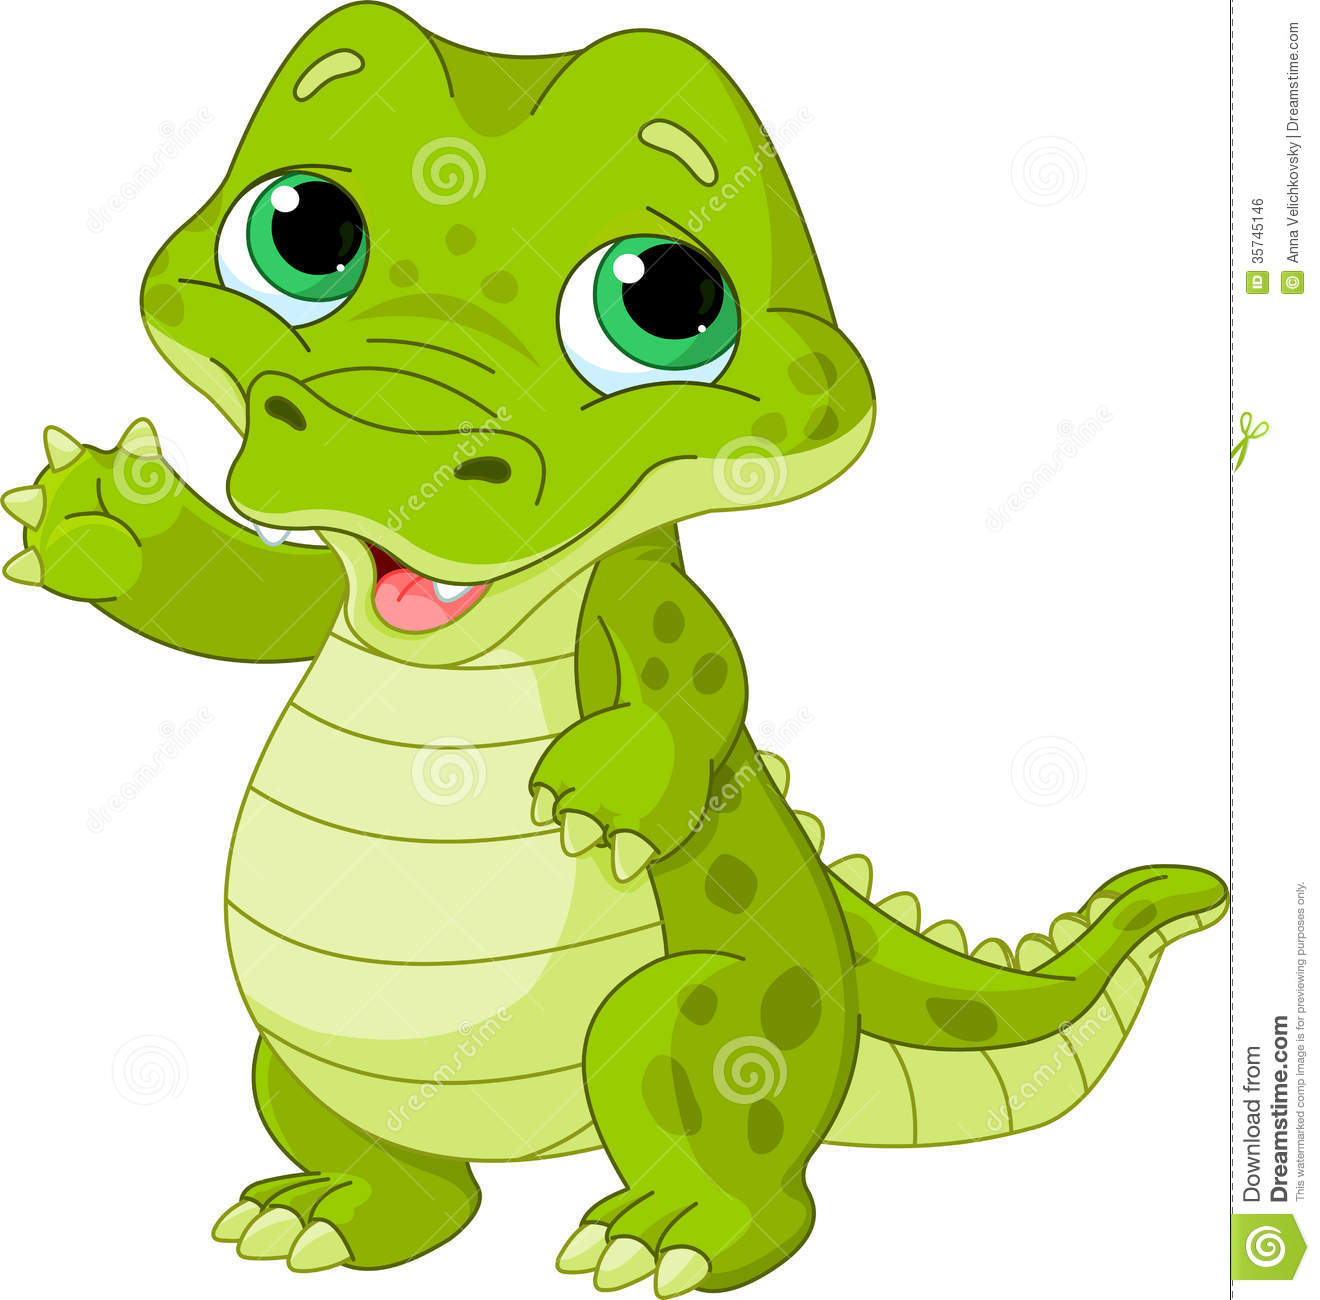 Baby Alligator Royalty Free Stock Image - Image: 35745146